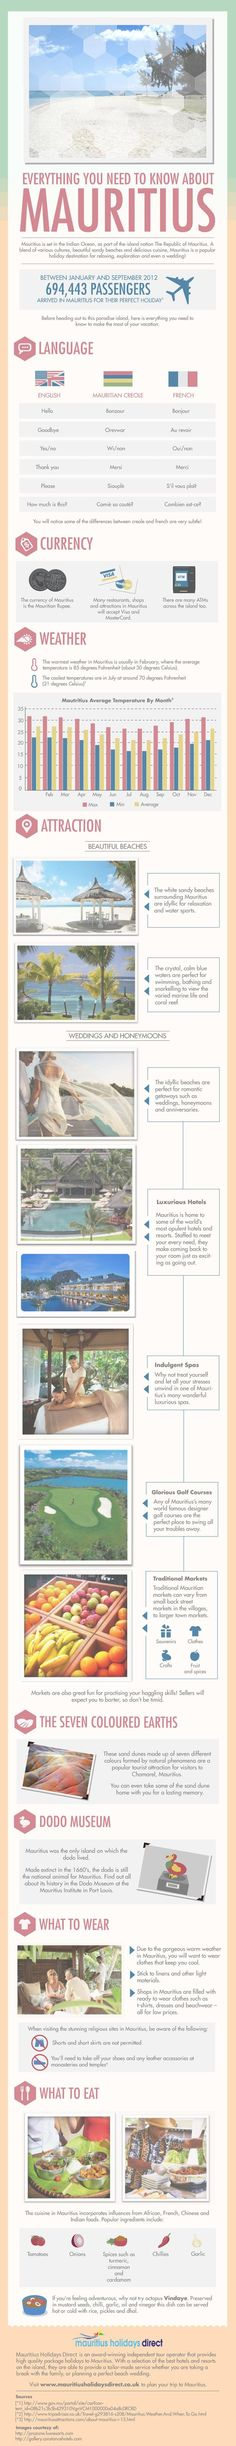 Everything You Need To Know About Mauritius #Infographic #Mauritius #Travel